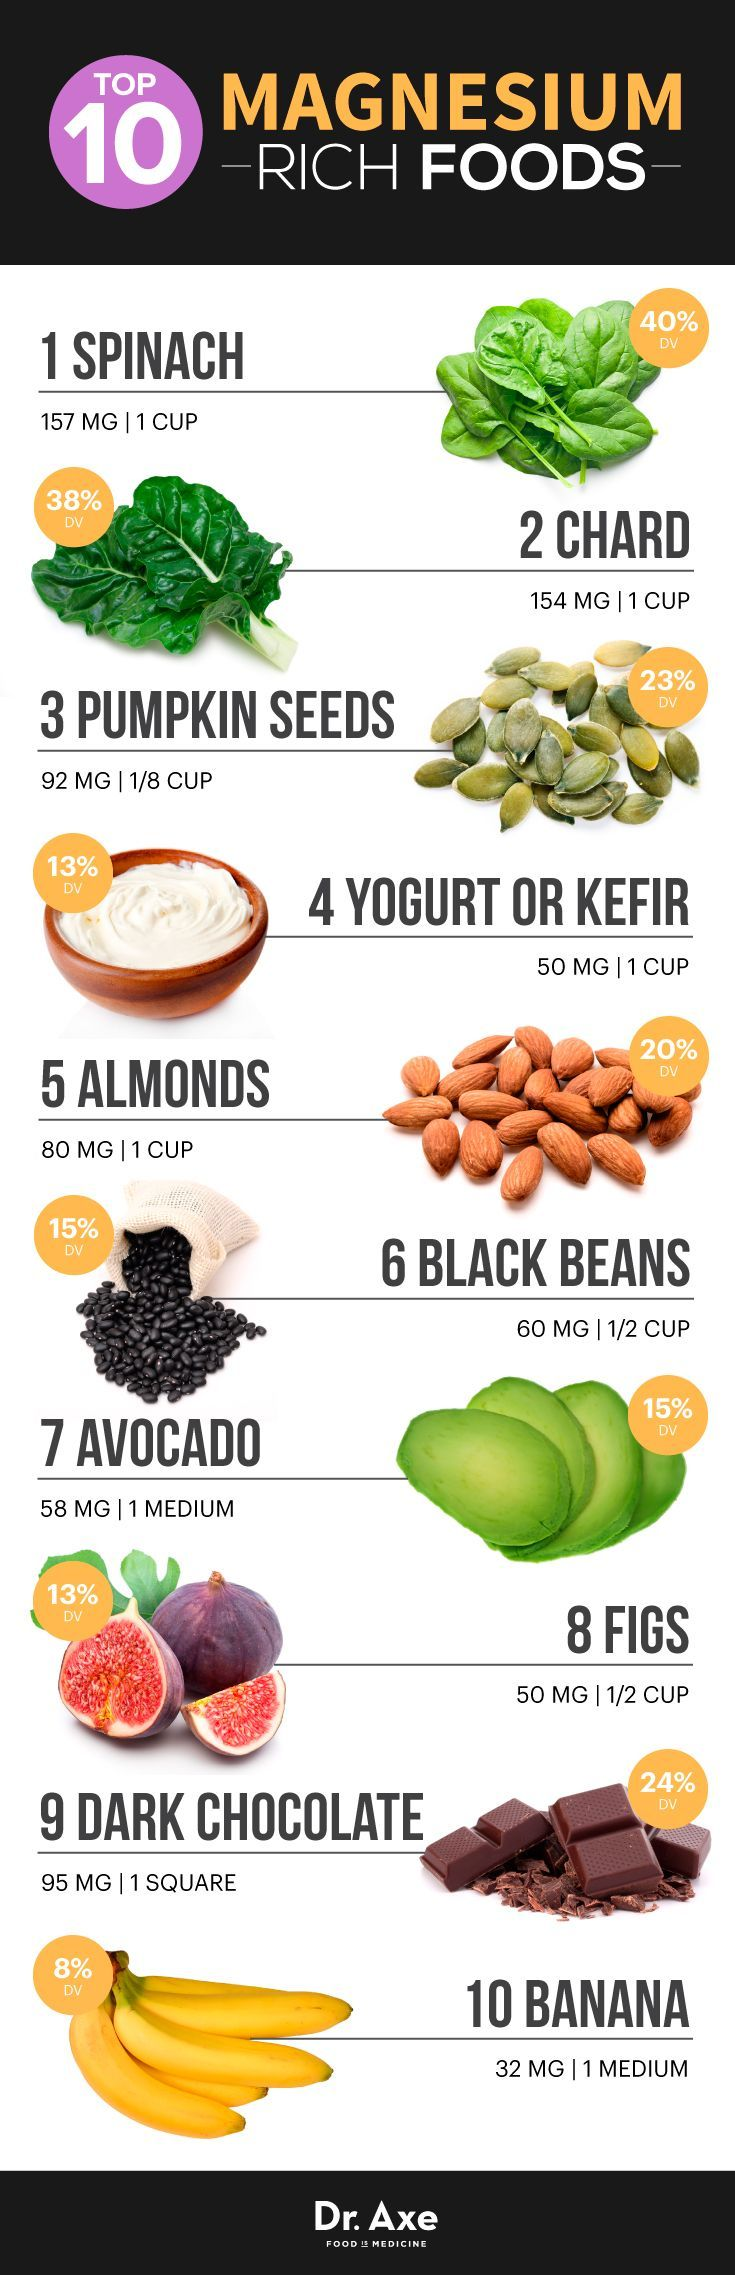 Top 10 Magnesium Foods Infographic Chart- learn about top 10 food chart enrised with Magnesium.